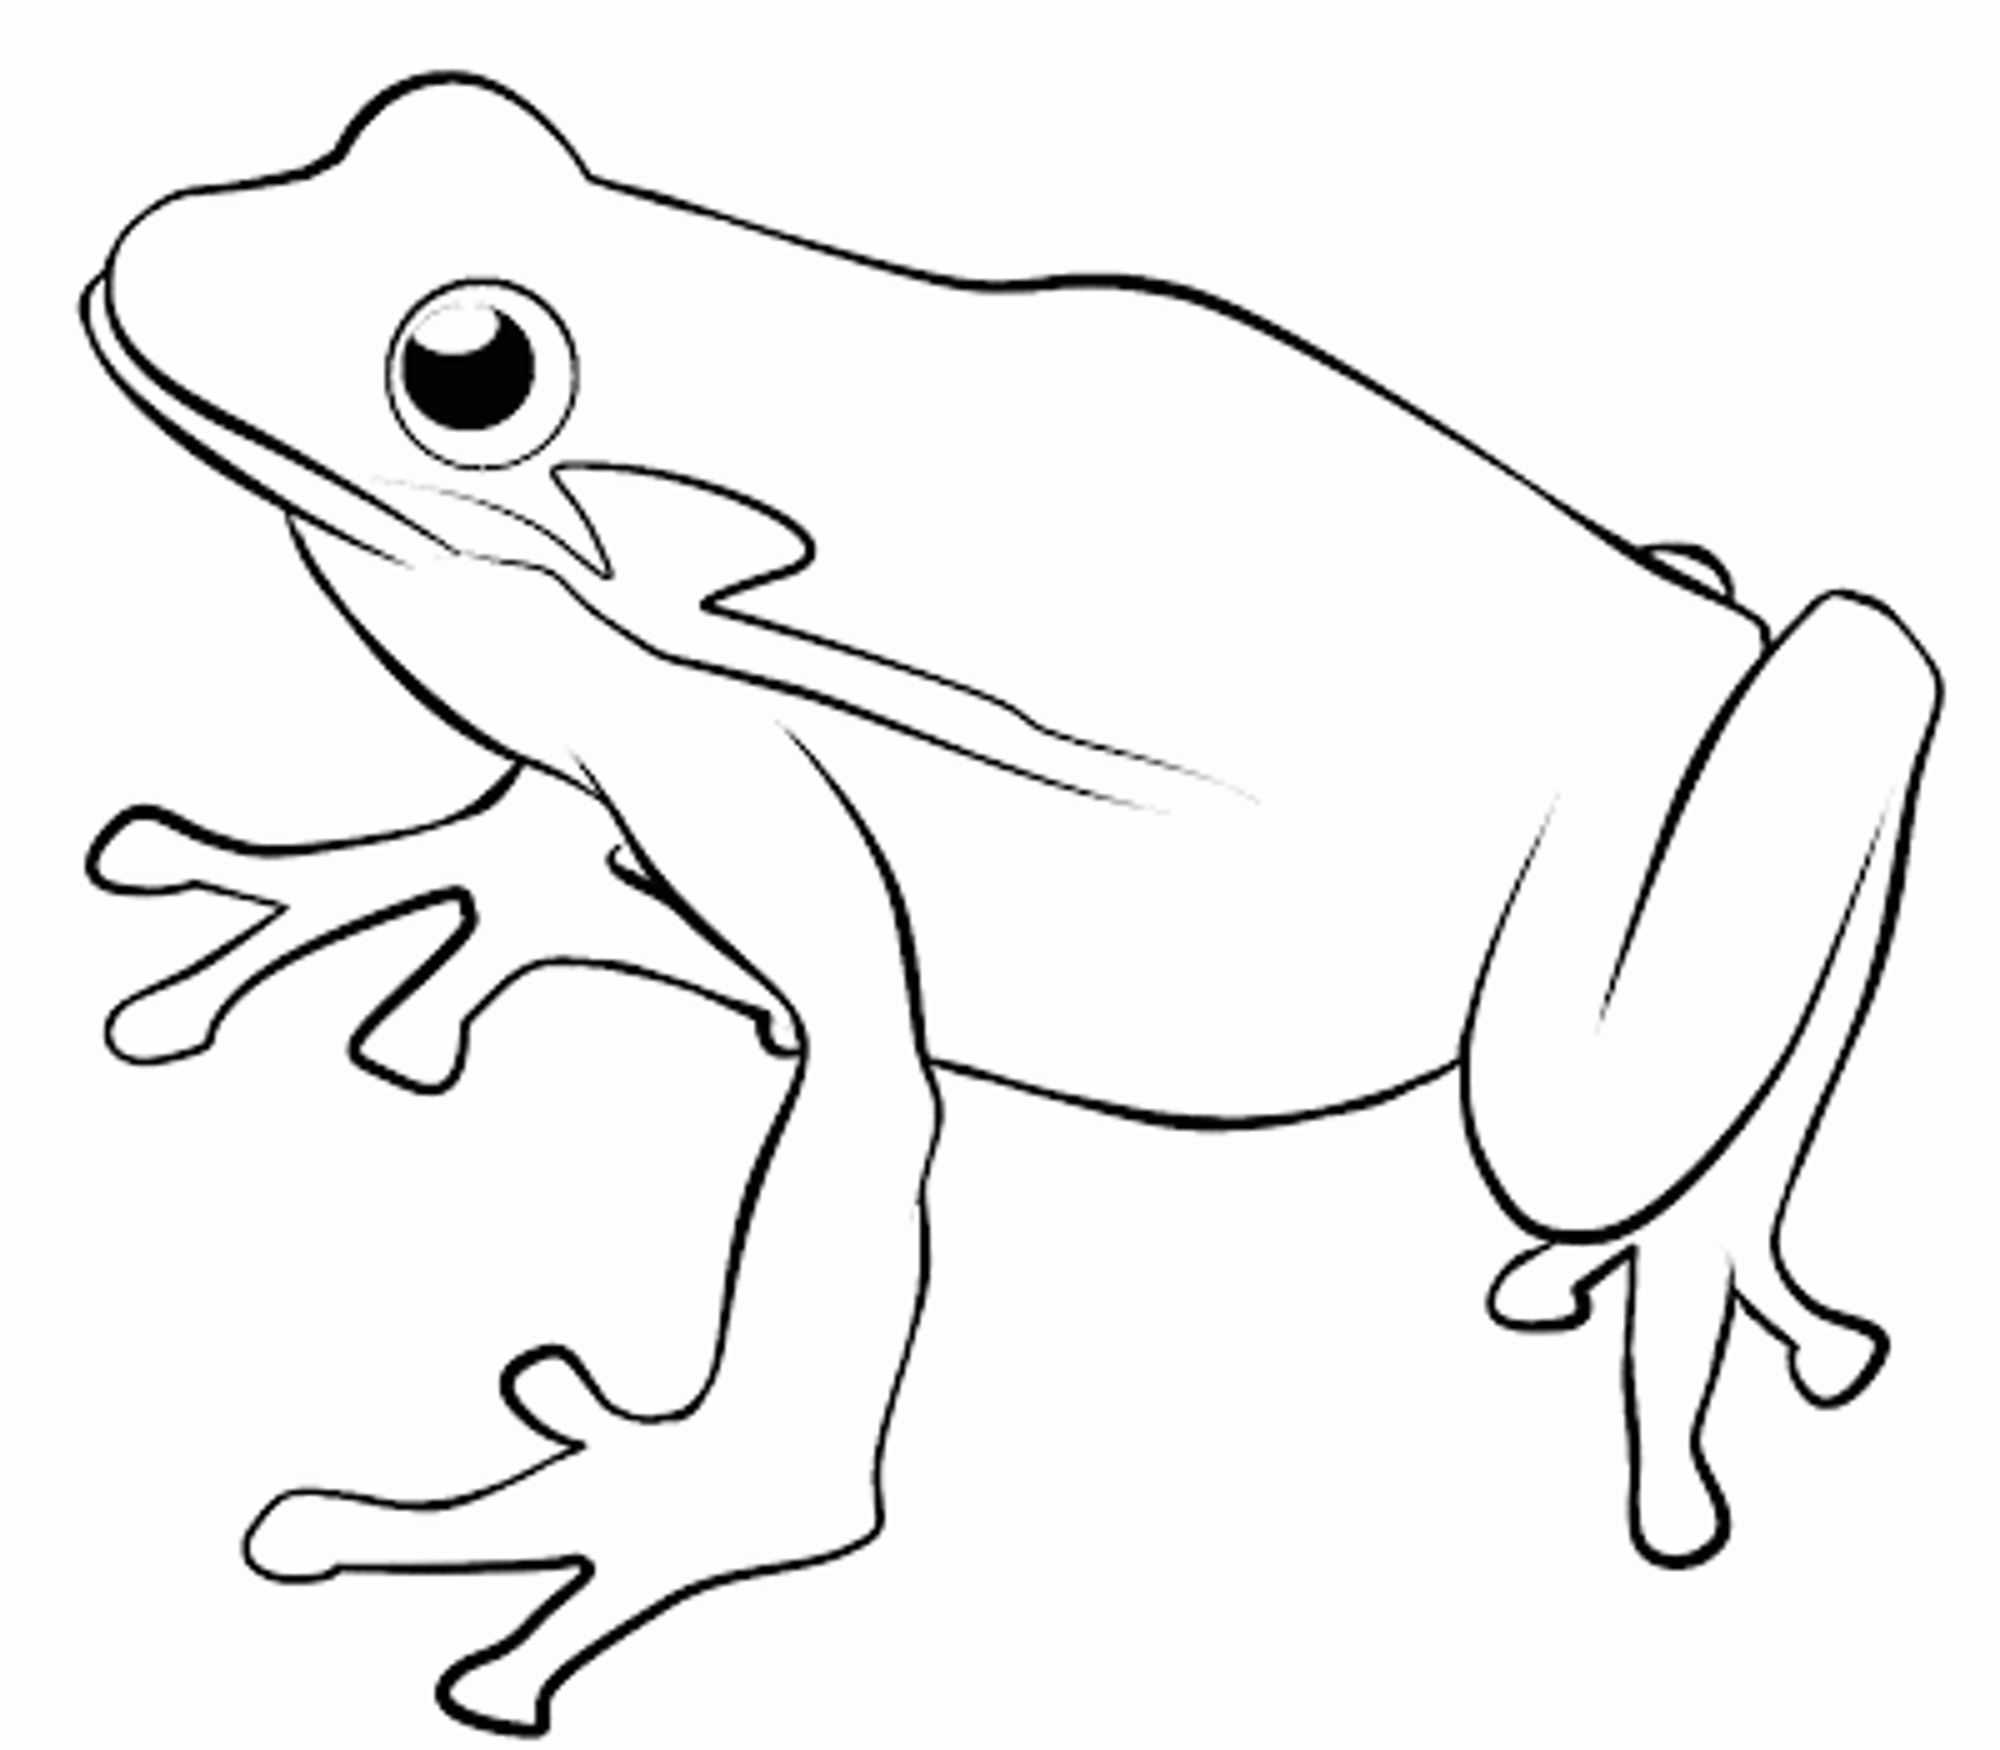 coloring frog outline images outline of a frog clipart best images coloring outline frog